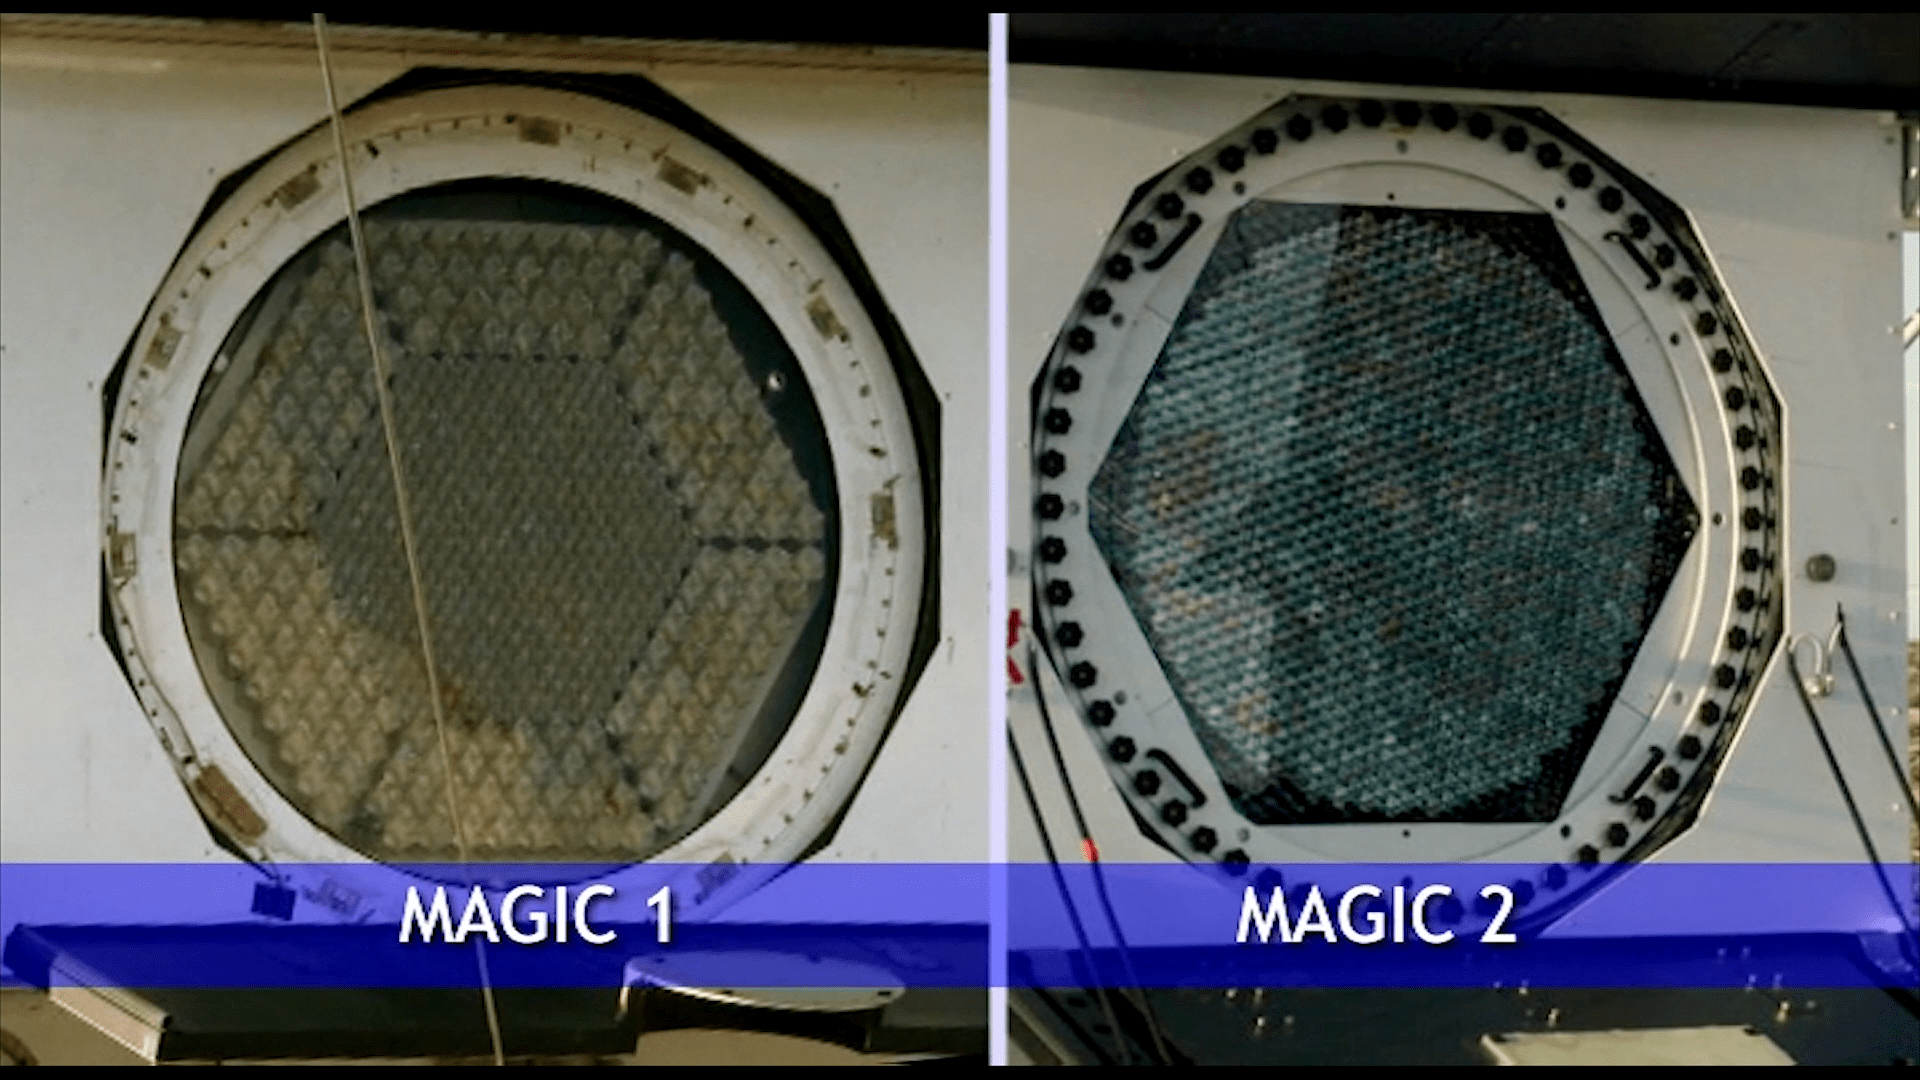 MAGIC: How does it work?